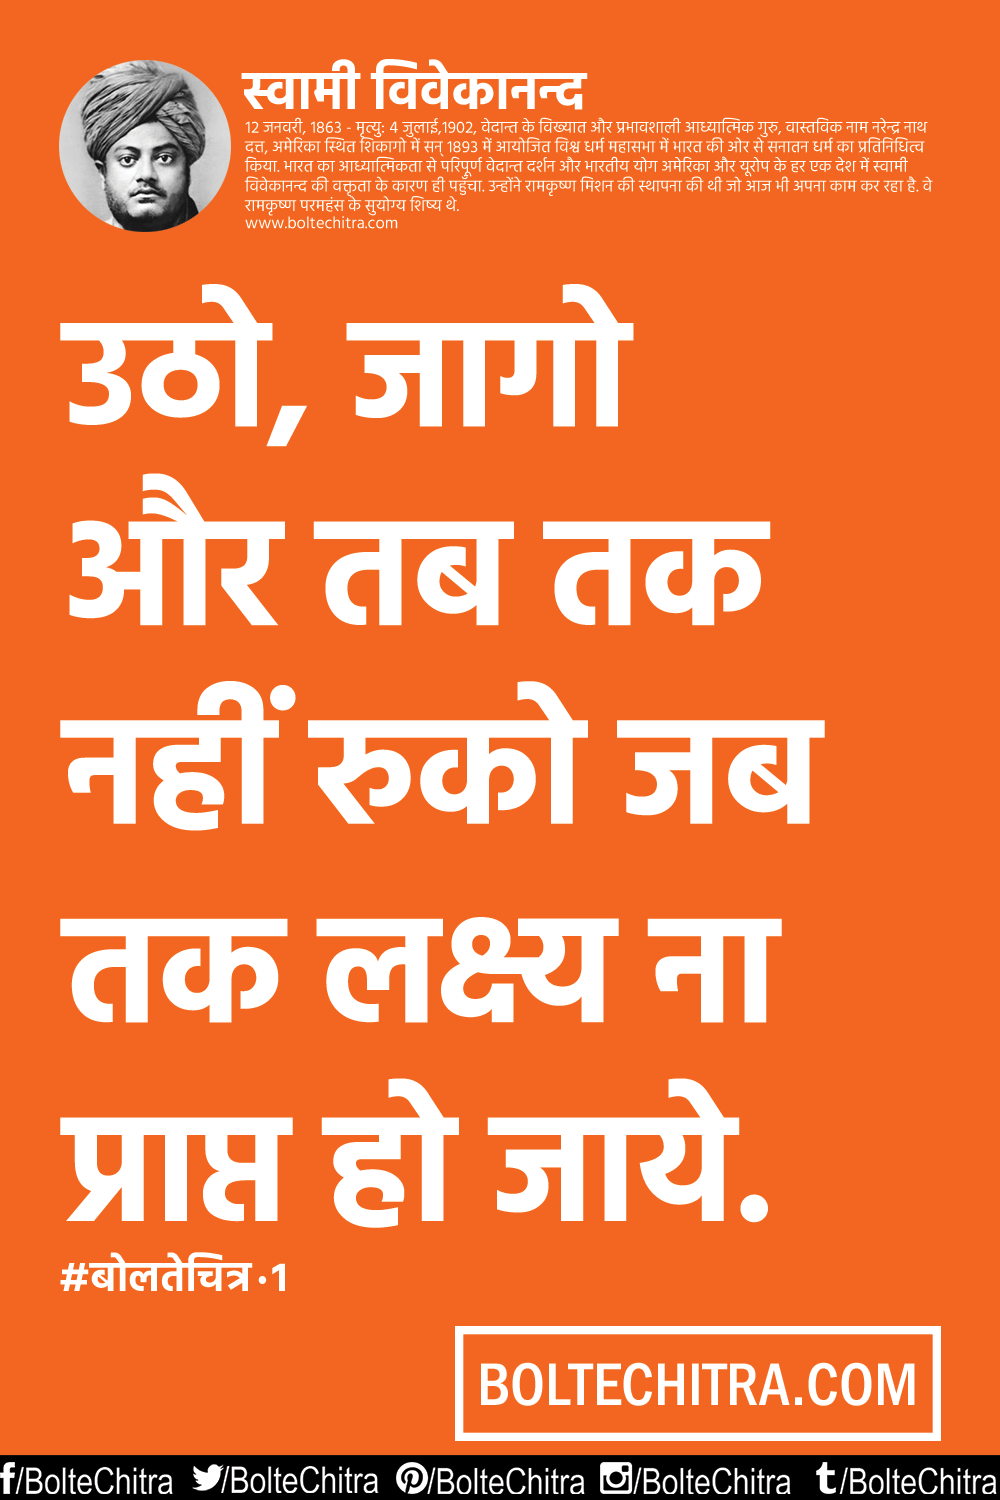 swami vivekanand quotes in hindi hindi quotes swami vivekananda quotes hindi 236023812357236623502368 235723672357237523252366234423062342 01 png